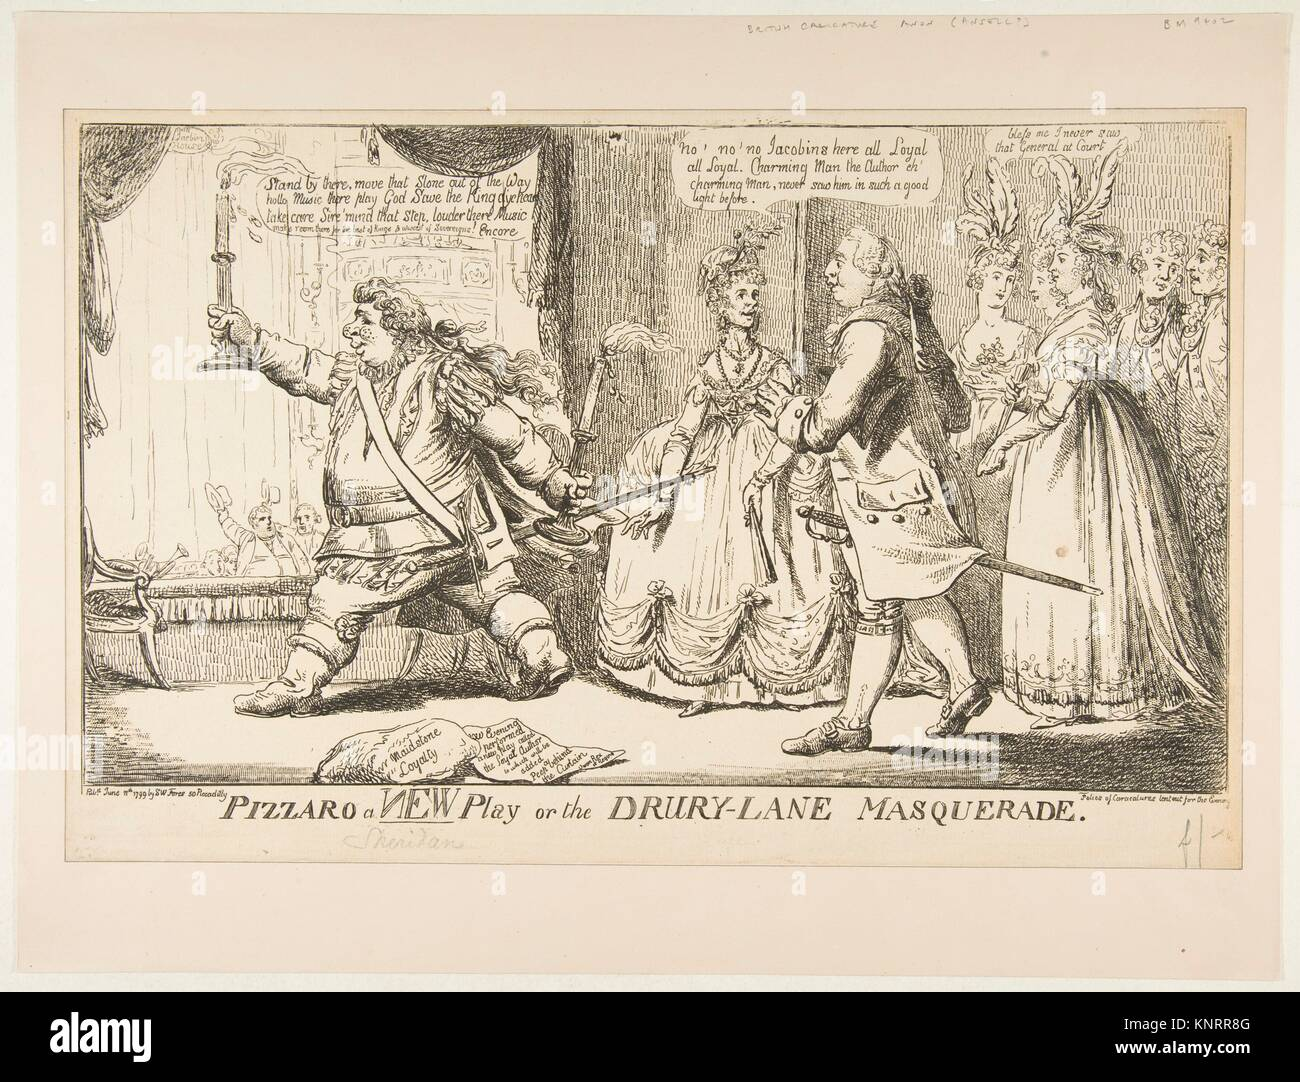 Pizzaro a New Play or the Drury-Lane Masquerade. Artist: Anonymous, British, 18th century; Publisher: Samuel William - Stock Image